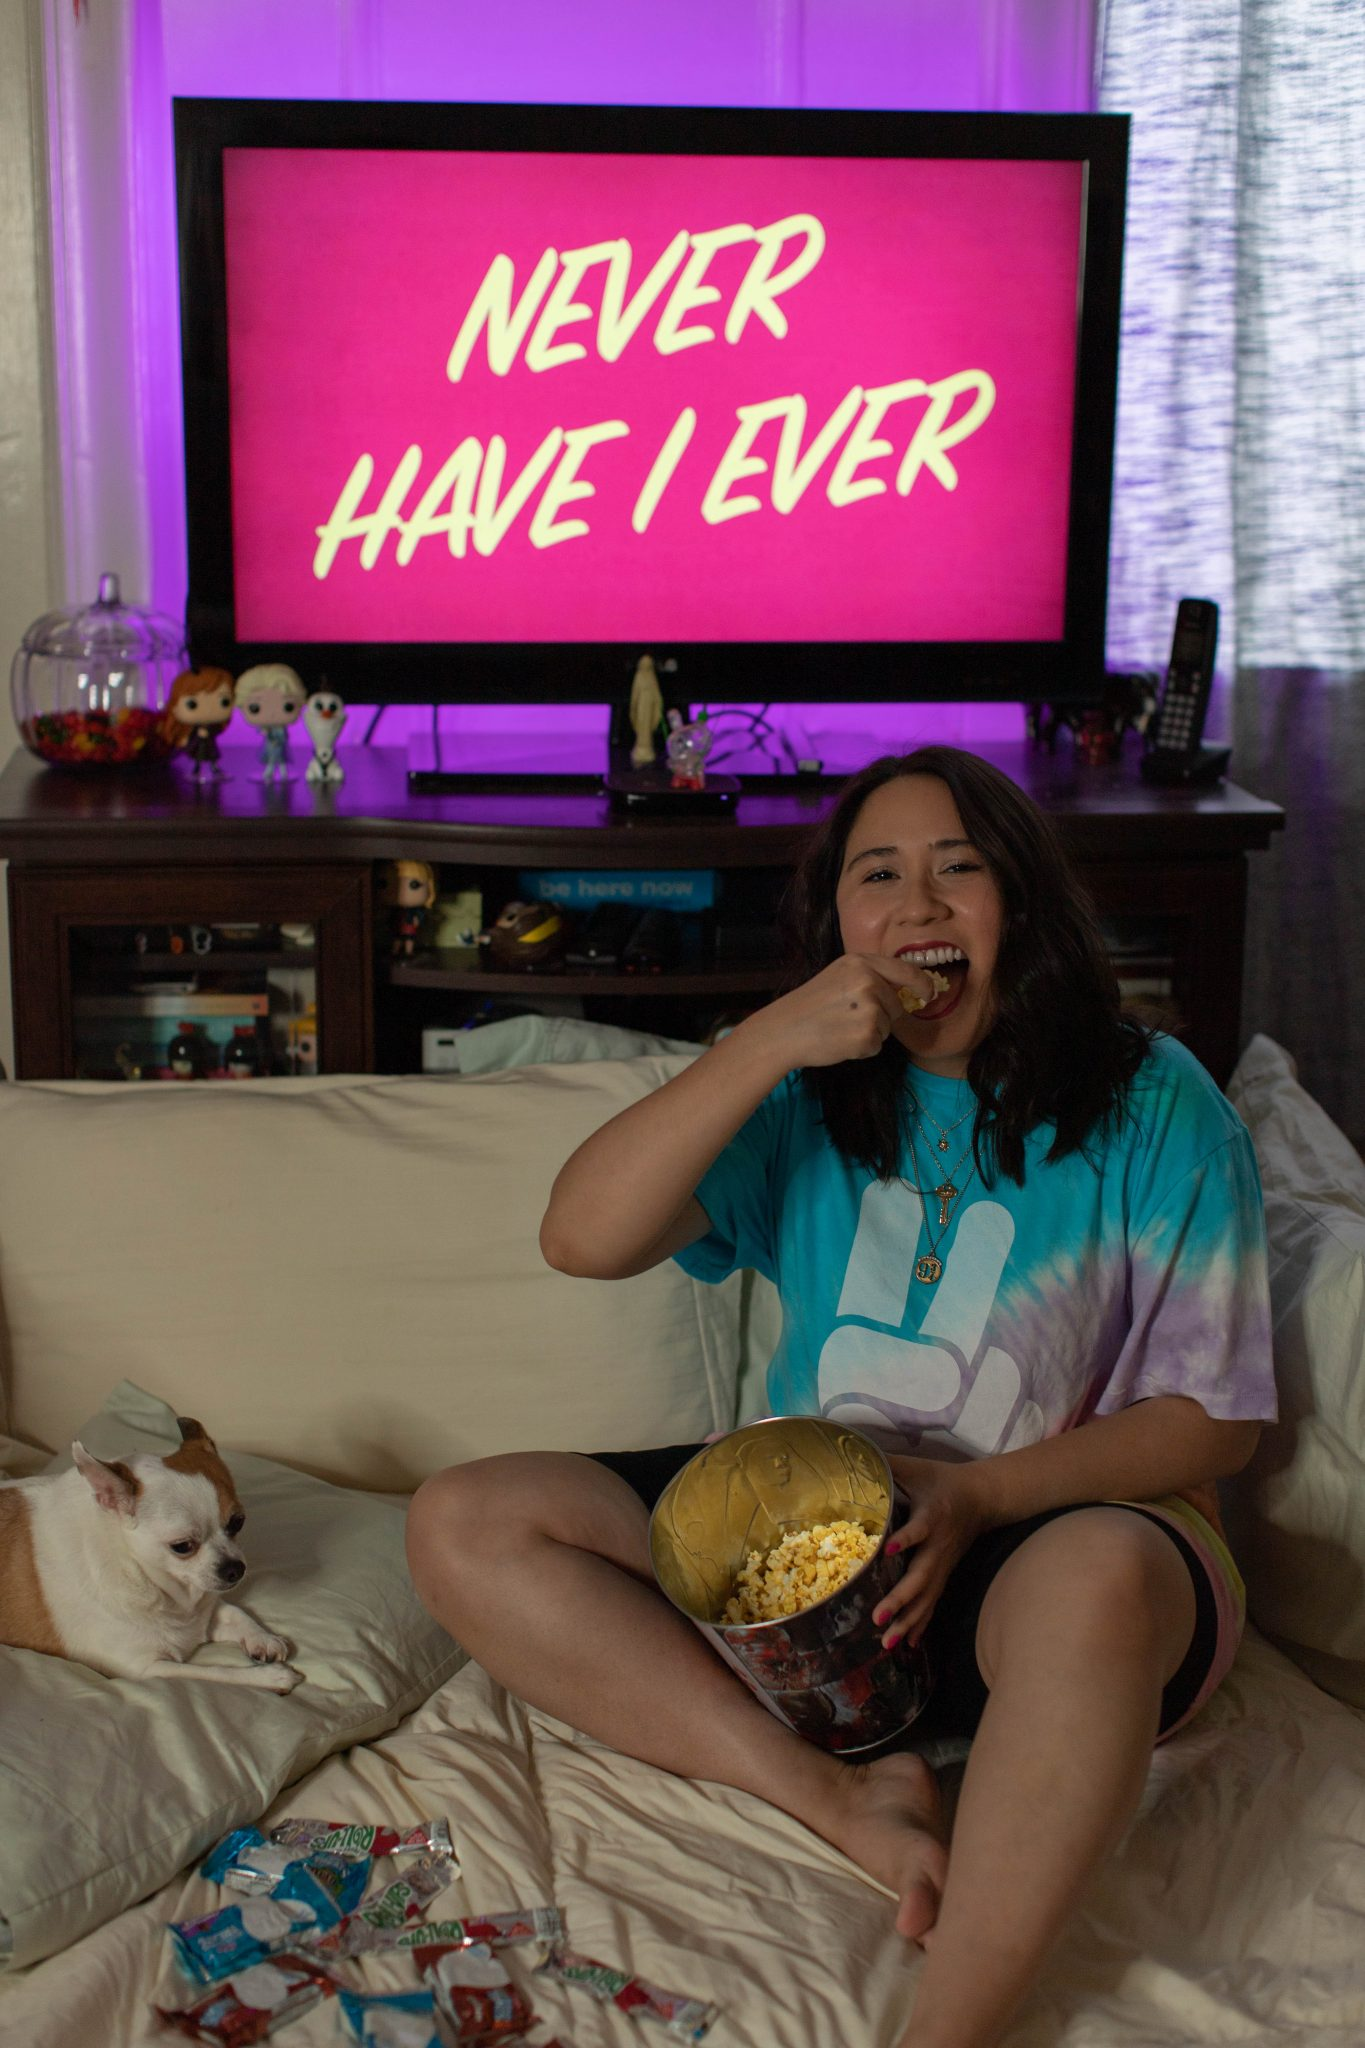 The best shows & movies to binge watch by popular NYC life and style blog, Live Laugh Linda: image of a woman watching Never Have I Ever on Netflix